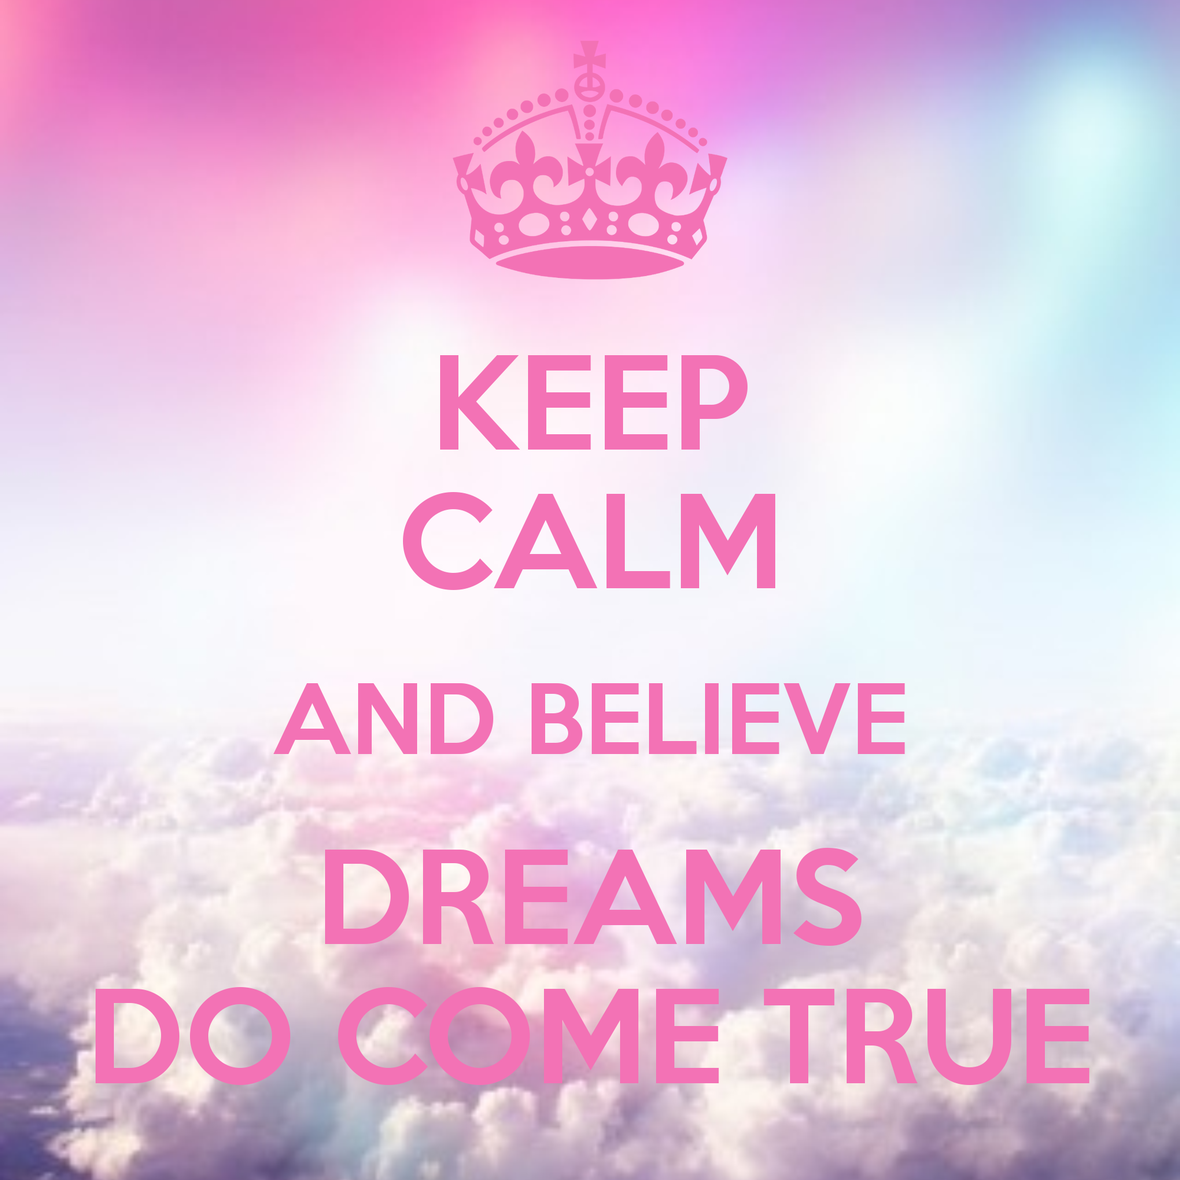 keep-calm-and-believe-dreams-do-come-true-1